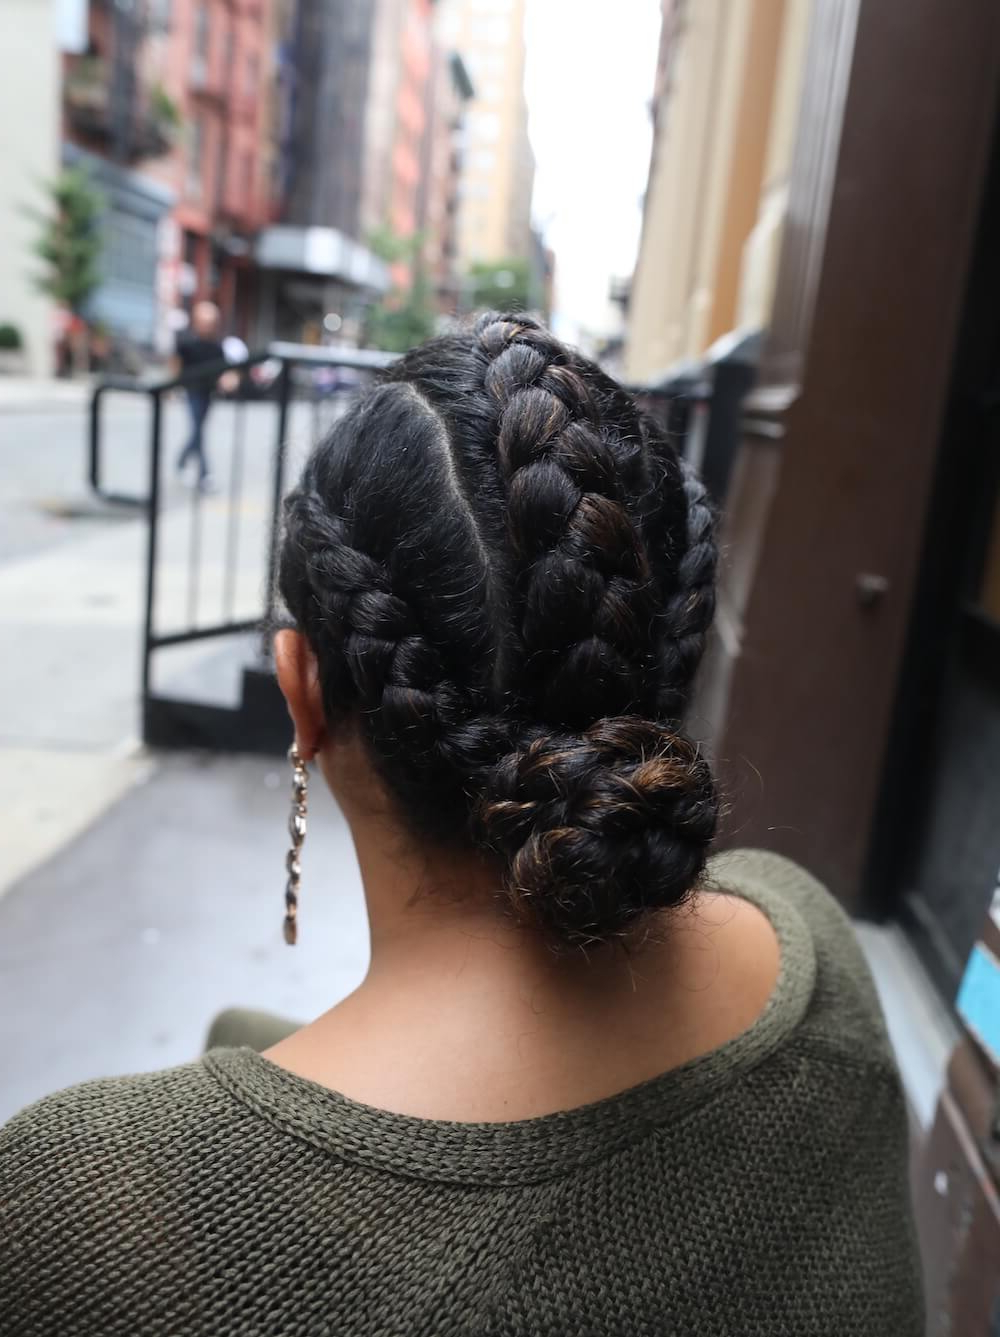 Devacurl 101: Different Ways On How To Braid Curly Hair Throughout Preferred Cornrows Tight Bun Under Braid Hairstyles (Gallery 8 of 20)